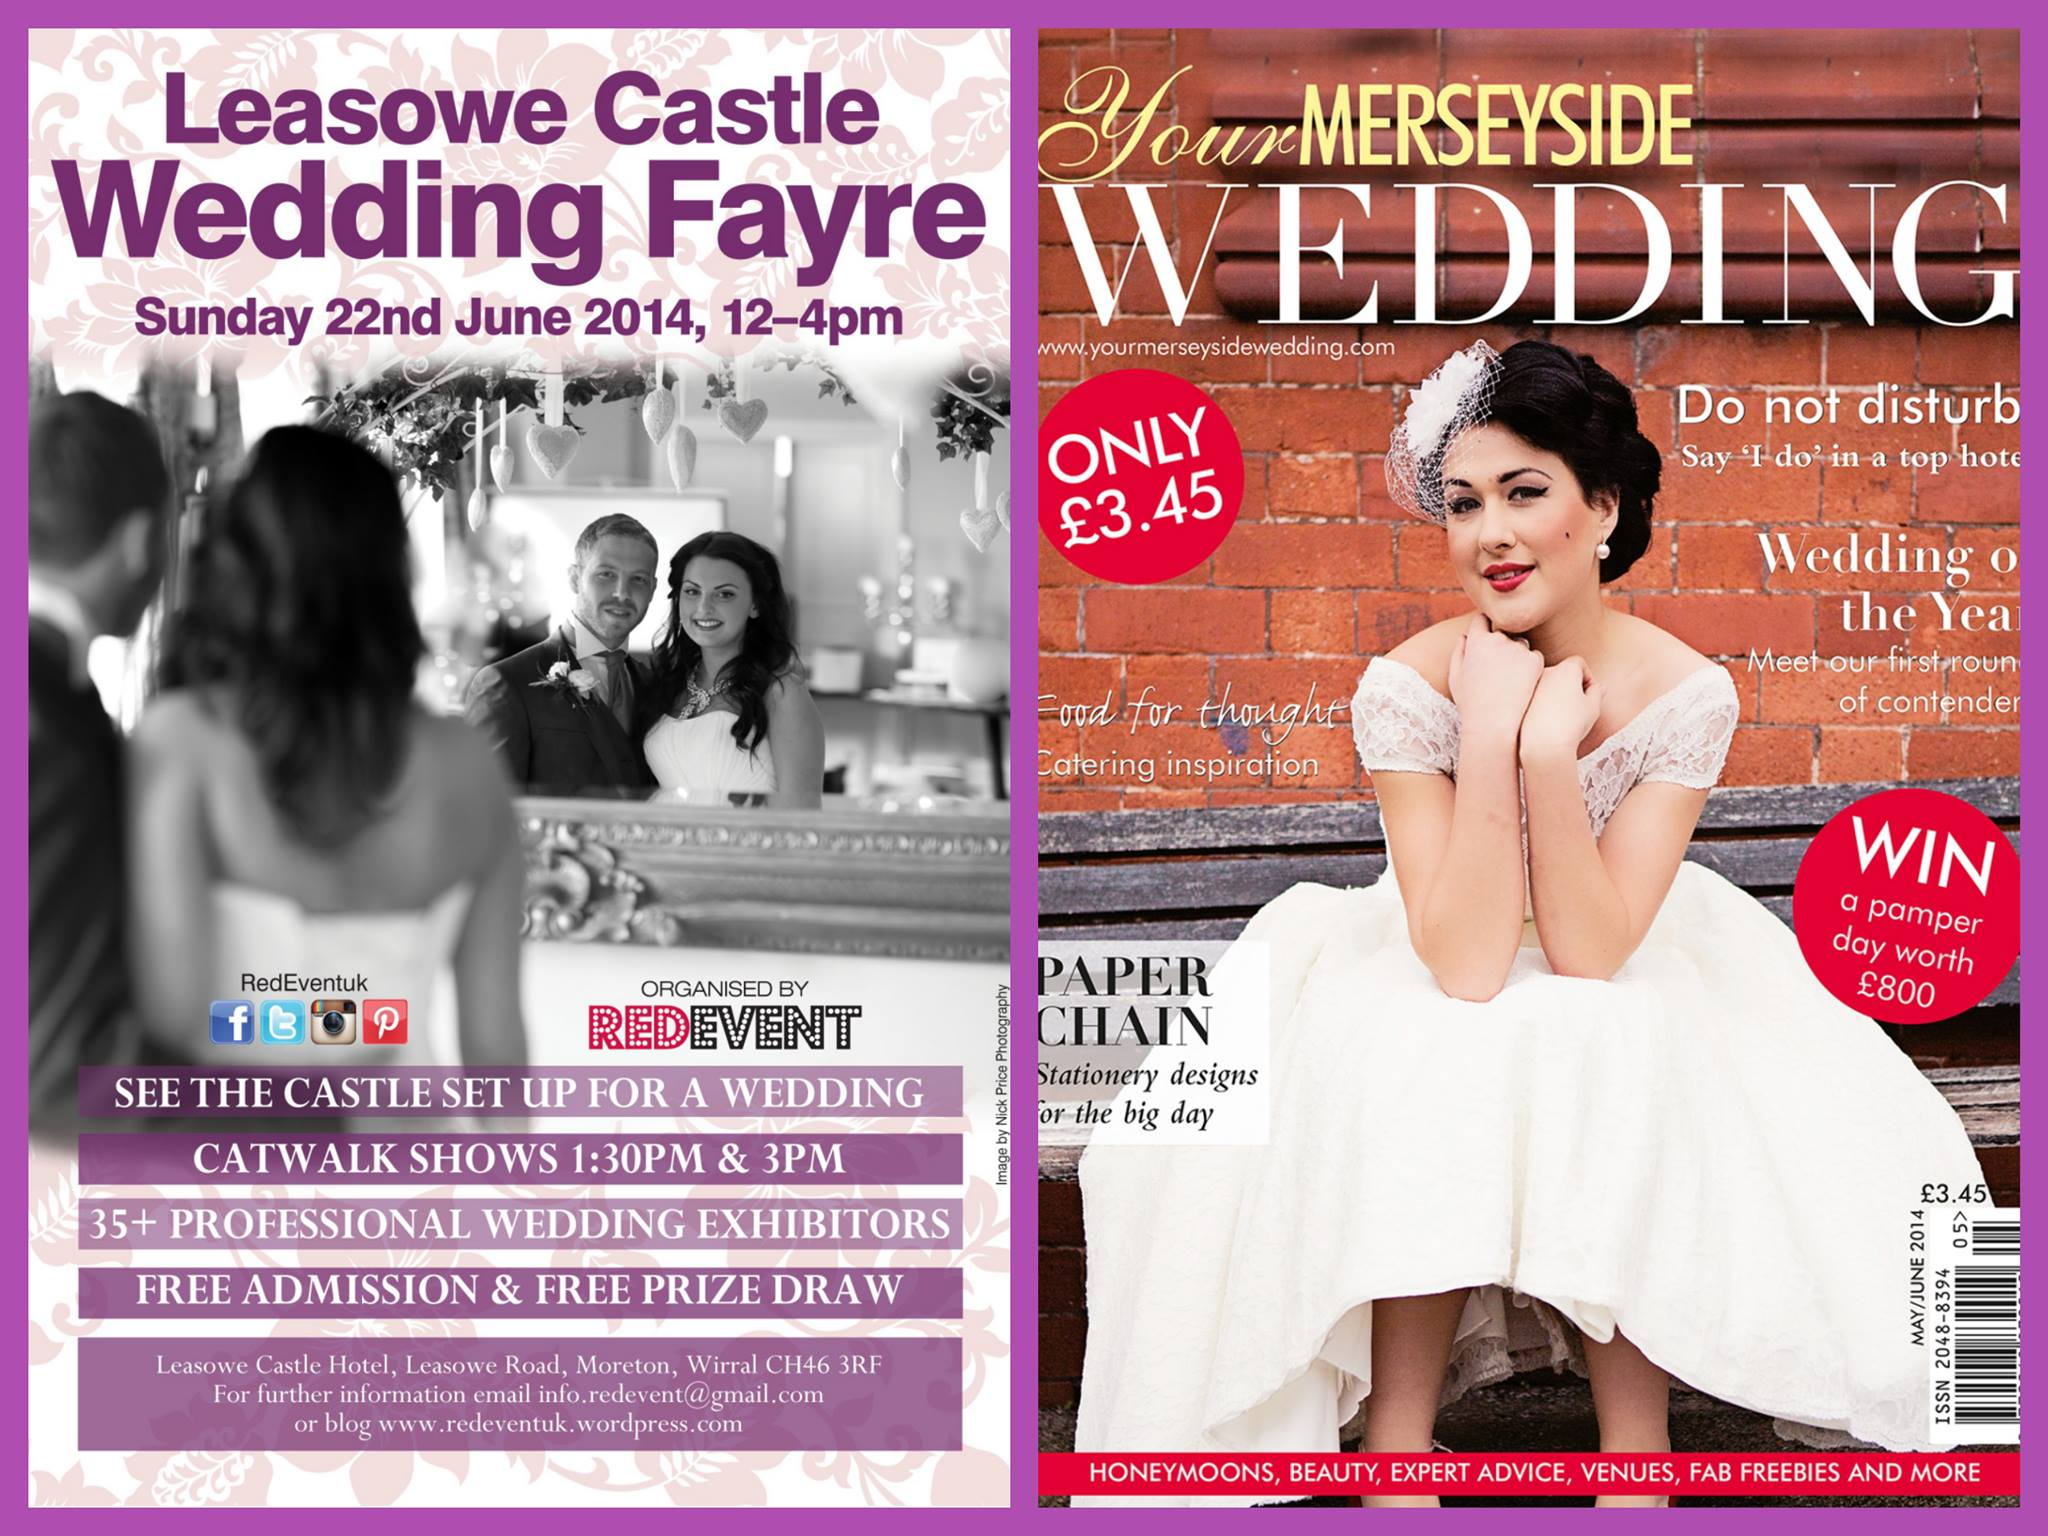 Your Merseyside Wedding Magazine LCWFJune Free Copy at Leasowe Castle Wedding Fayre 2014